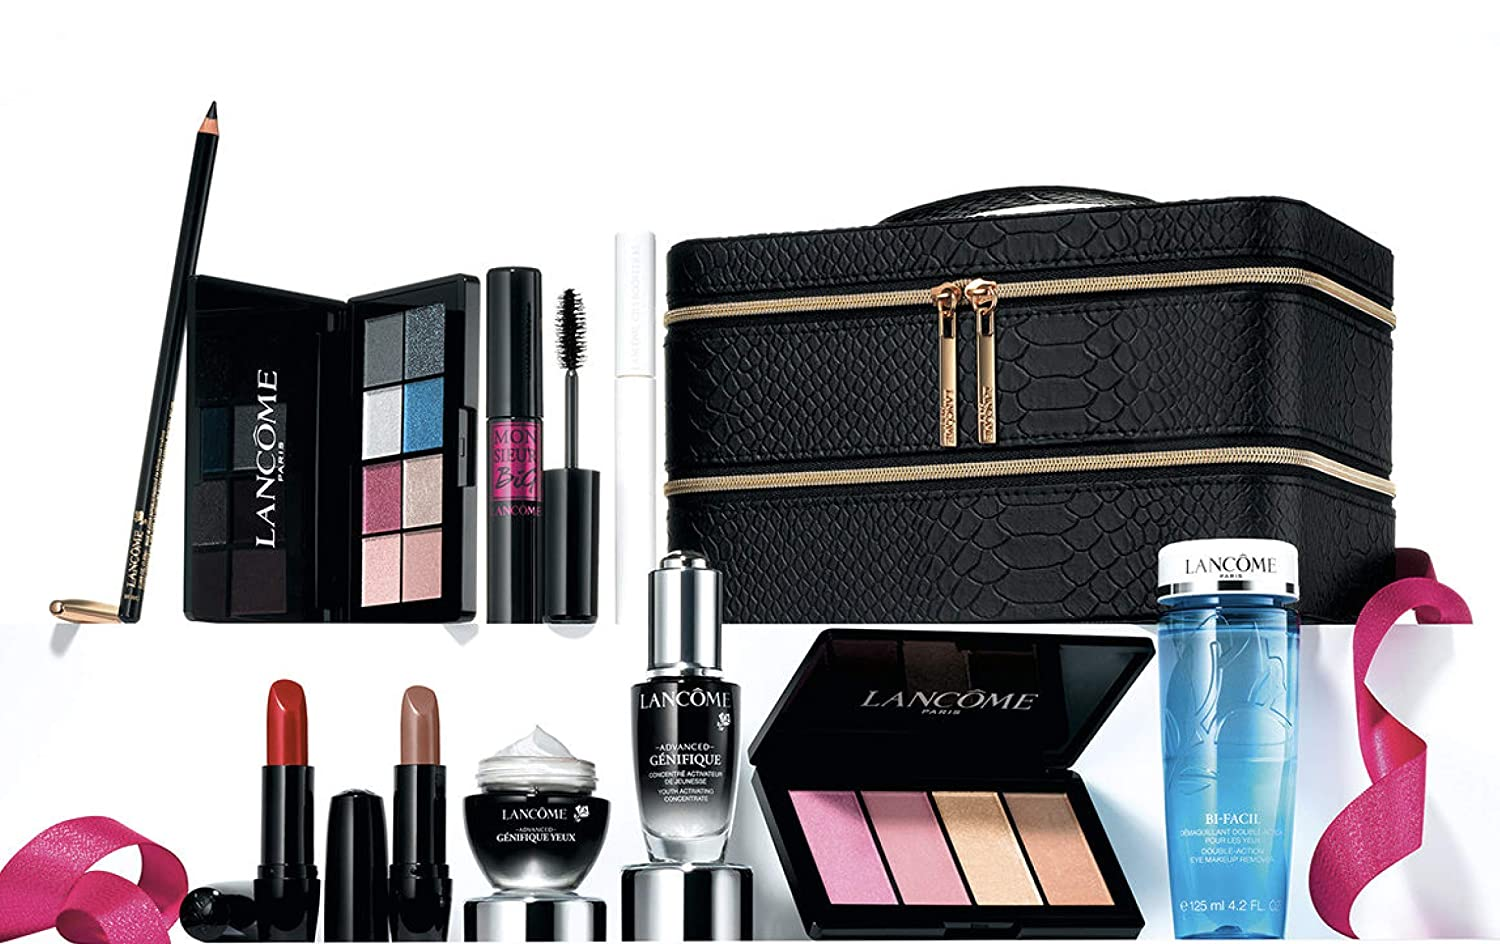 49e108b39ff Amazon.com : Lancome 2018 Holiday Beauty Box in GLAM Collection, 10 Full  Size Best Sellers Favorites Set : Beauty